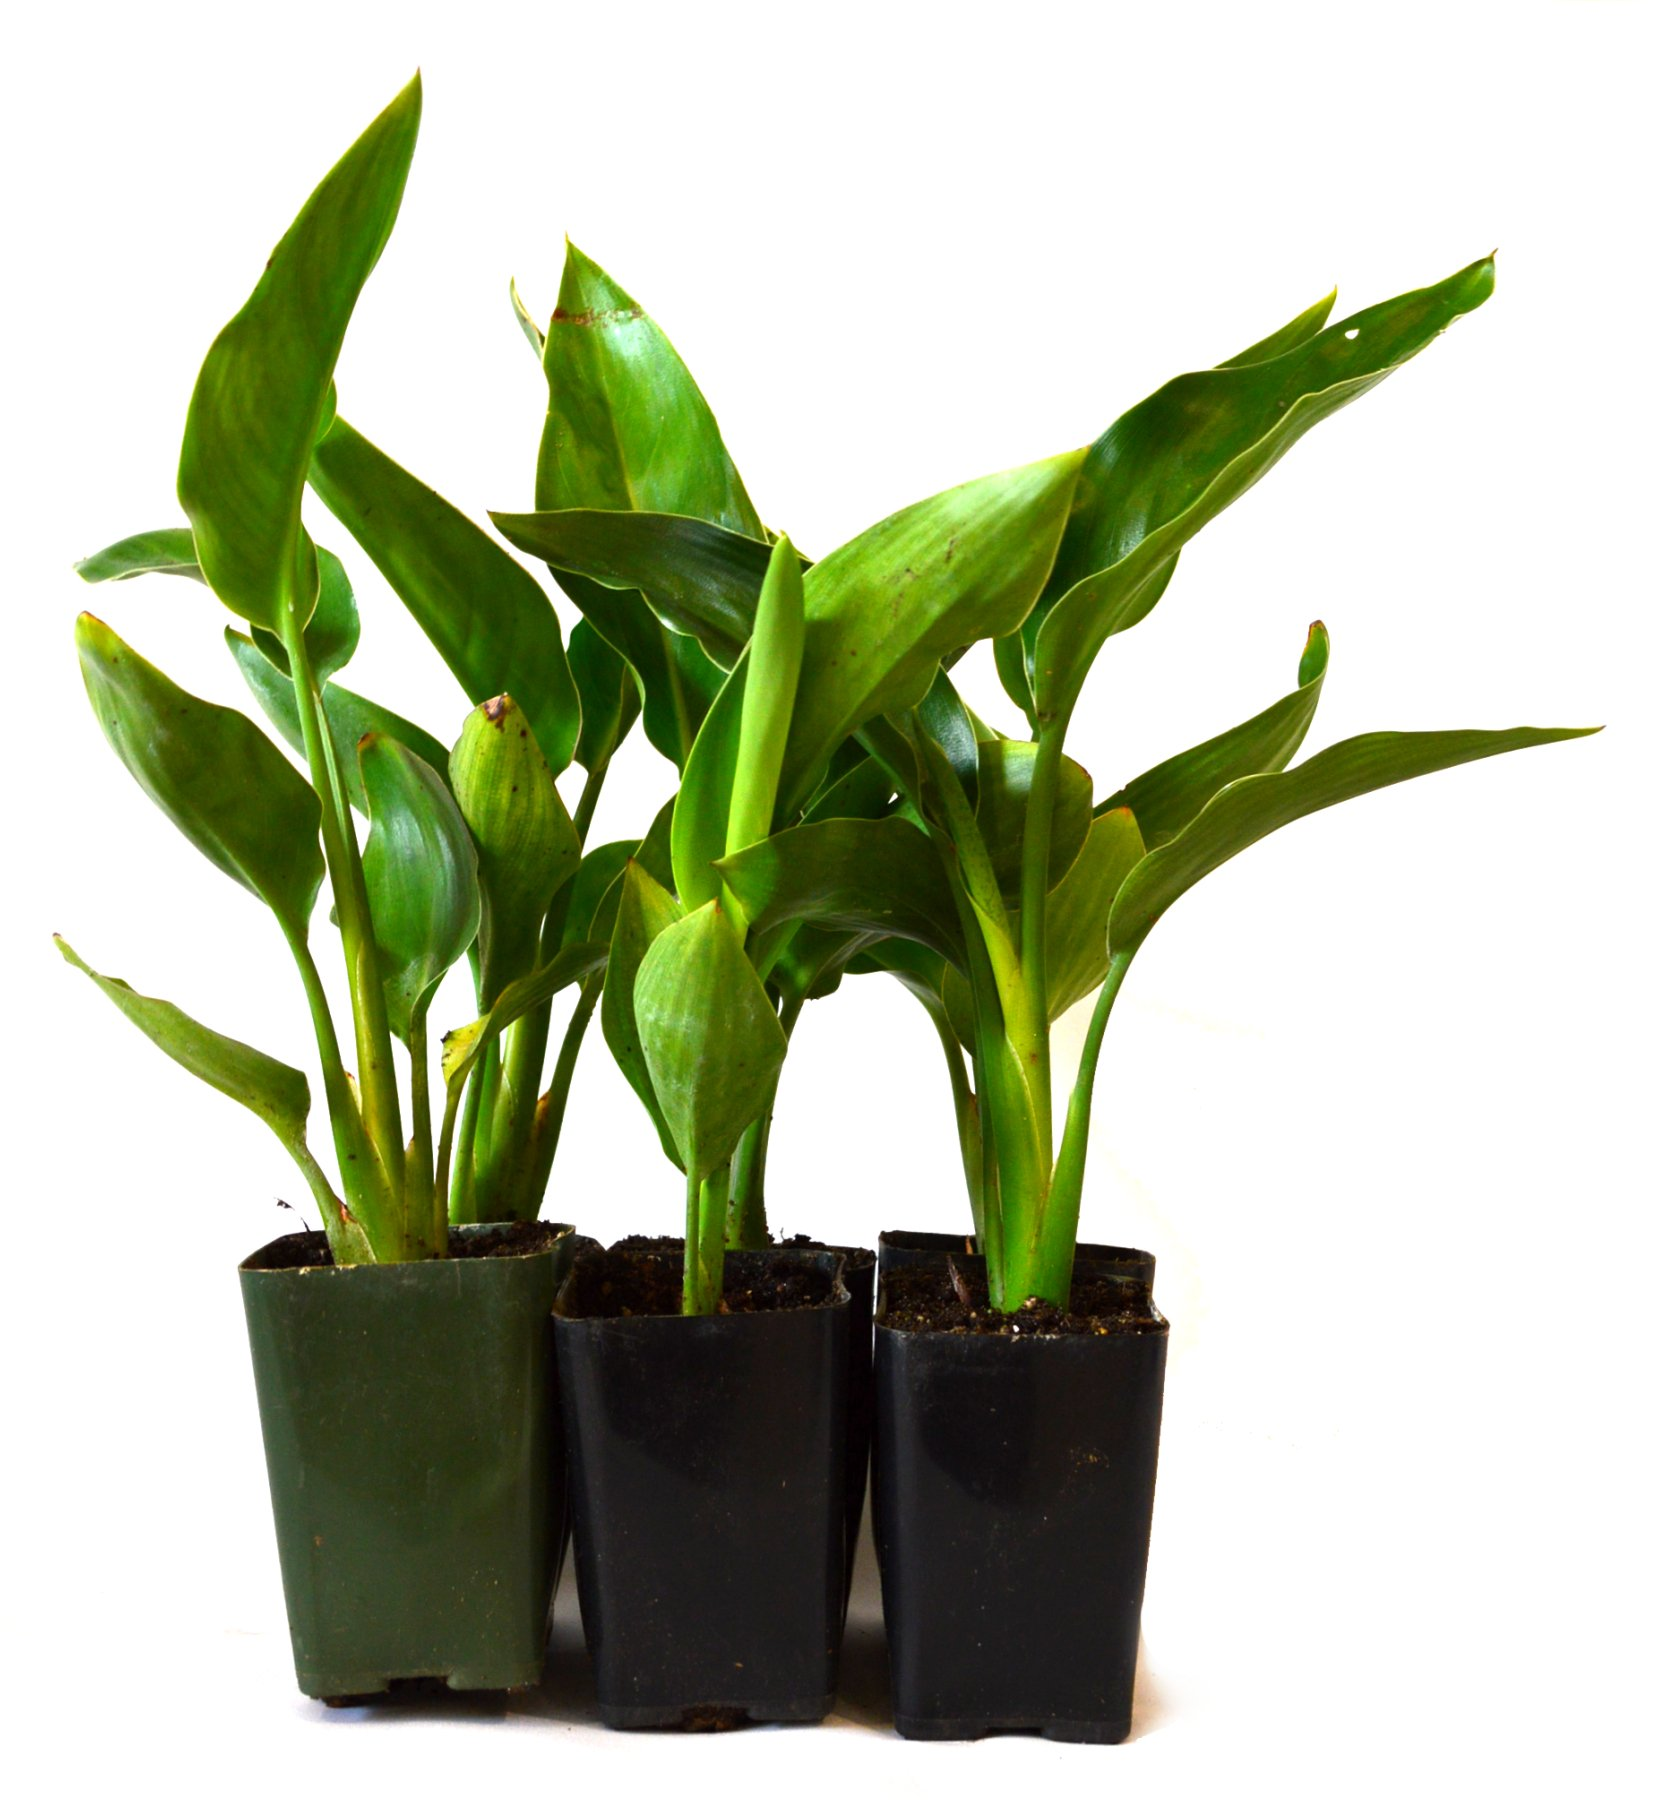 9Greenbox Live Plants, Orange Bird of Paradise, 4 Pound (Pack of 6)